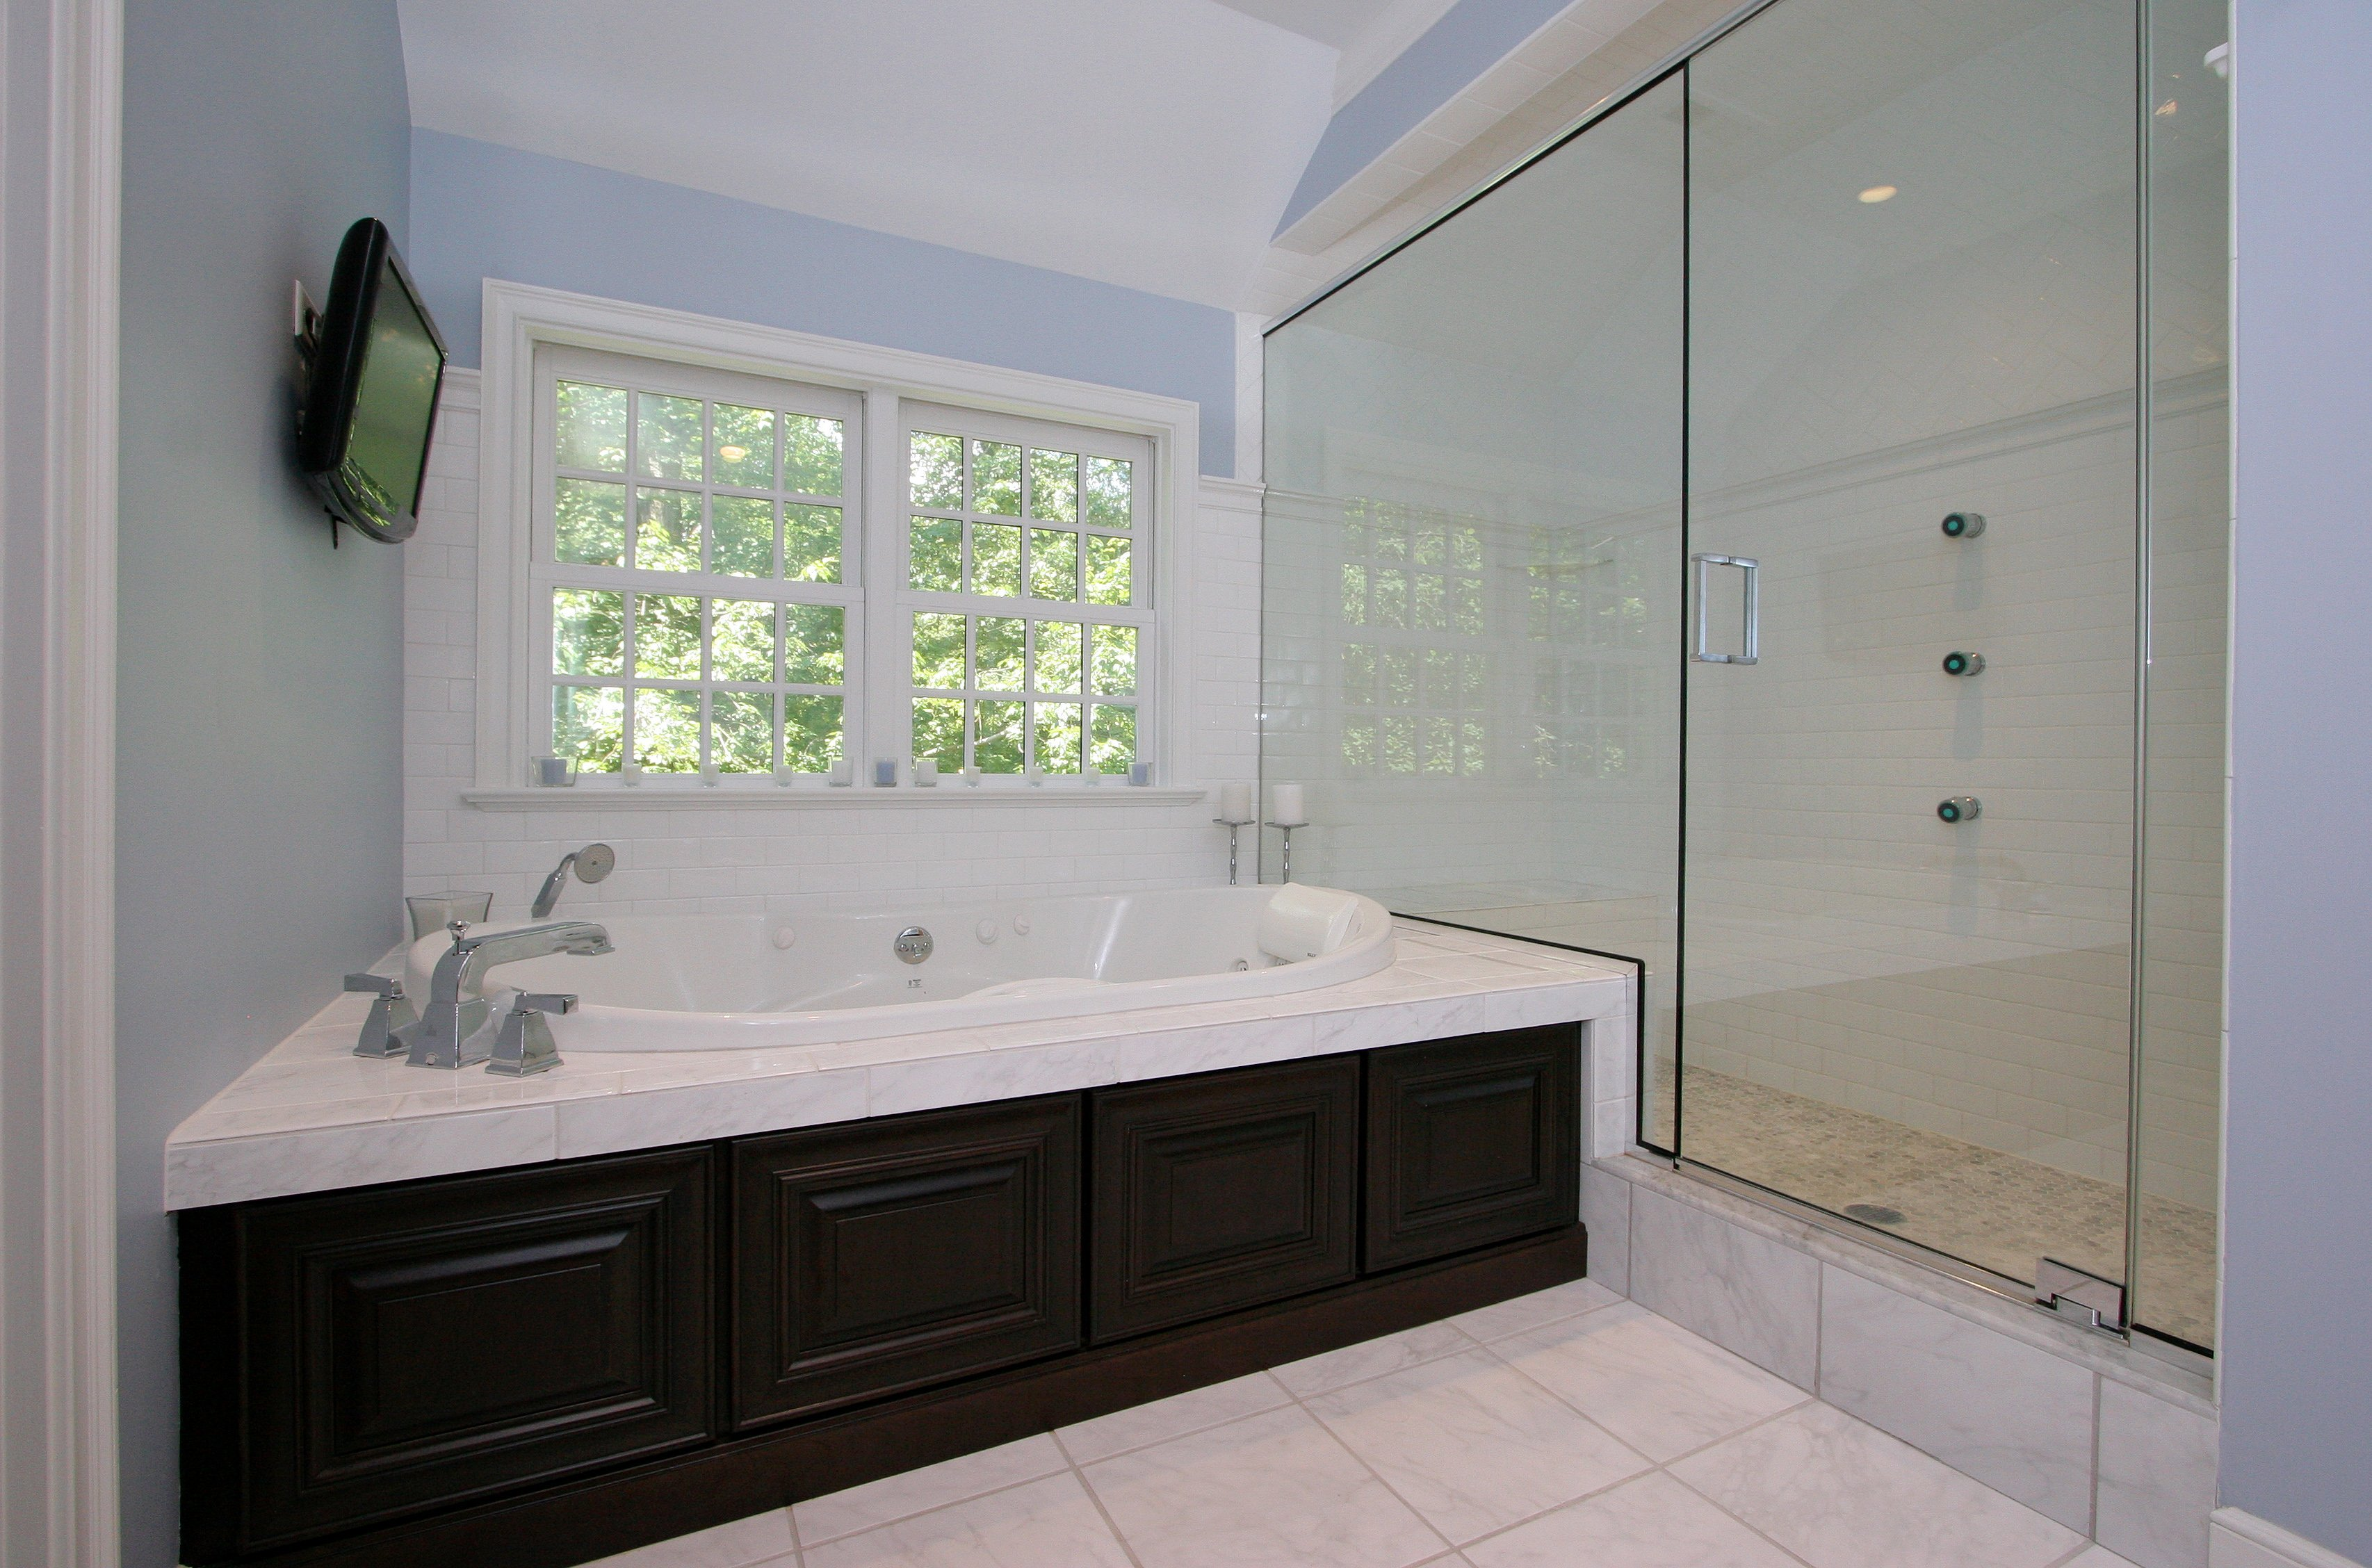 general contractor bathroom with jacuzzi, renovated by SIP Building Solutions - Westport, Fairfield, Stamford, Greenwich, Danbury CT